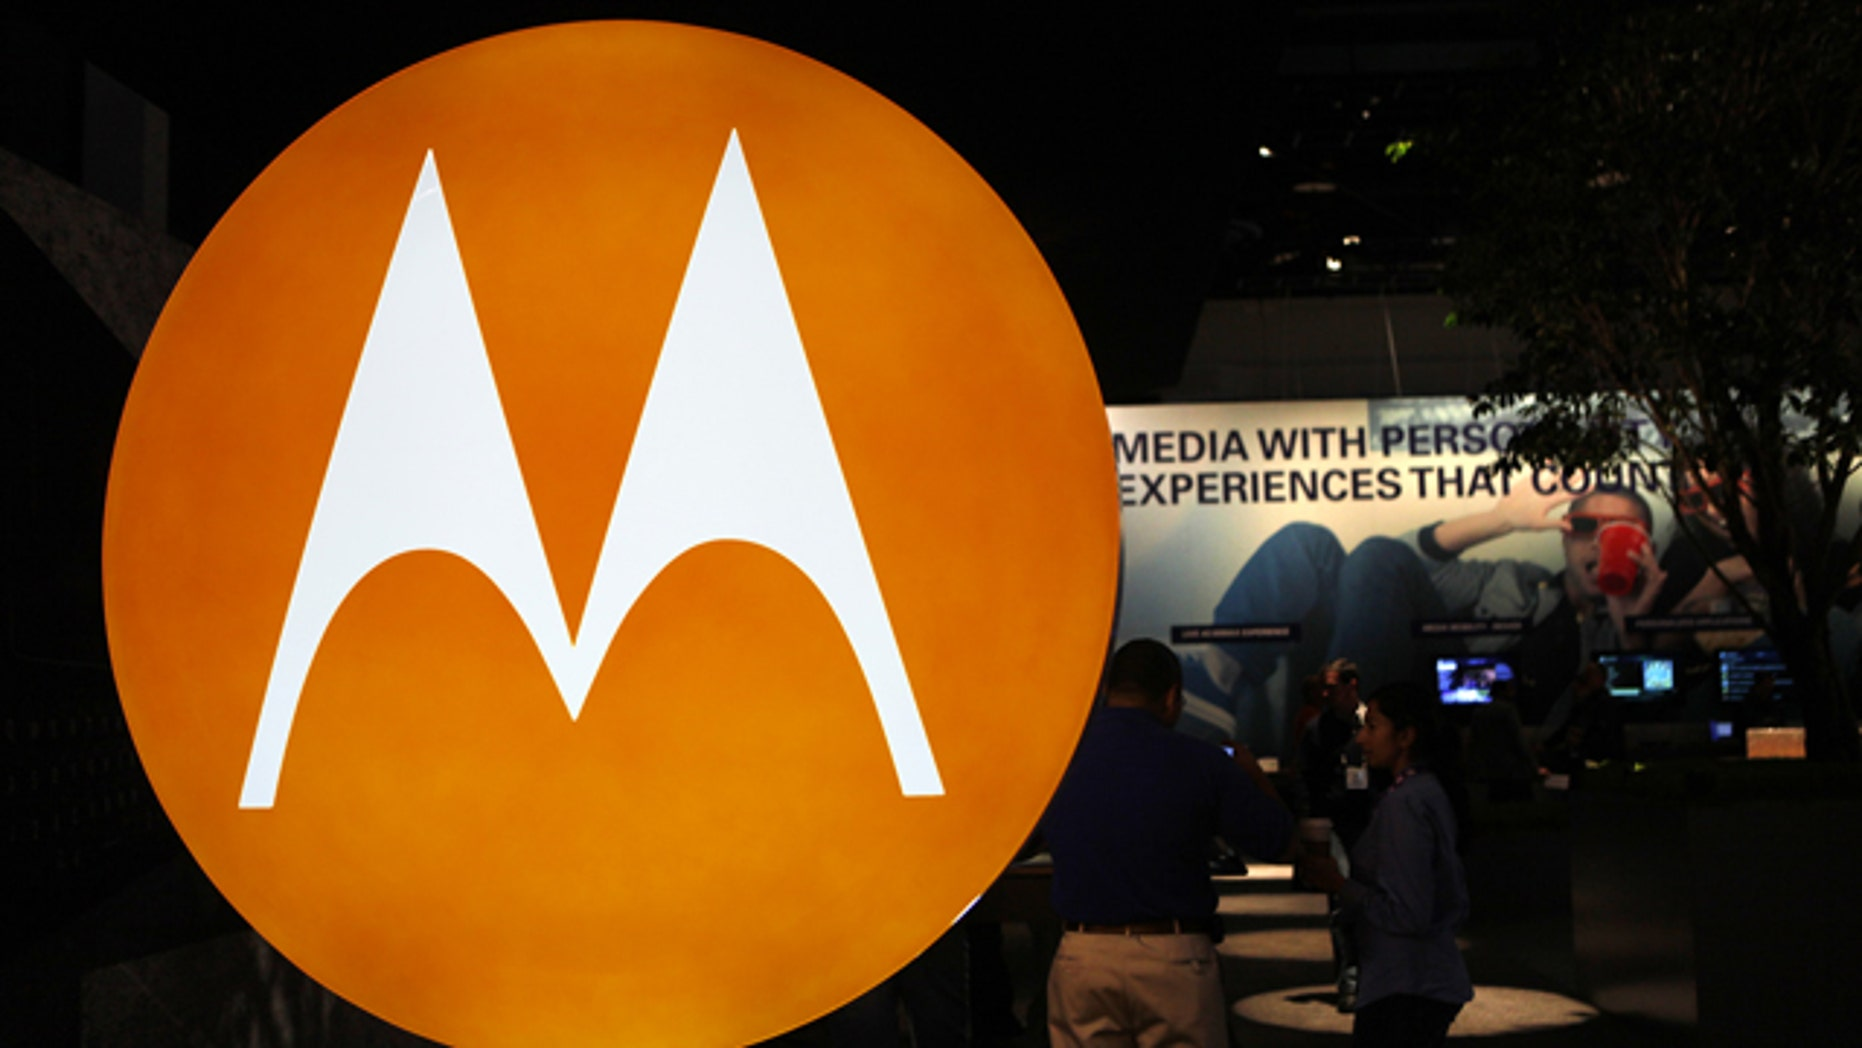 The Motorola logo is seen at the company's exhibit at the Consumer Electronics Show in Las Vegas. Motorola Inc. said Monday, July 19, 2010, that it is selling most of its wireless network division to Nokia Siemens Networks, a Finnish-German joint venture, for $1.2 billion as part of a planned breakup of the company.